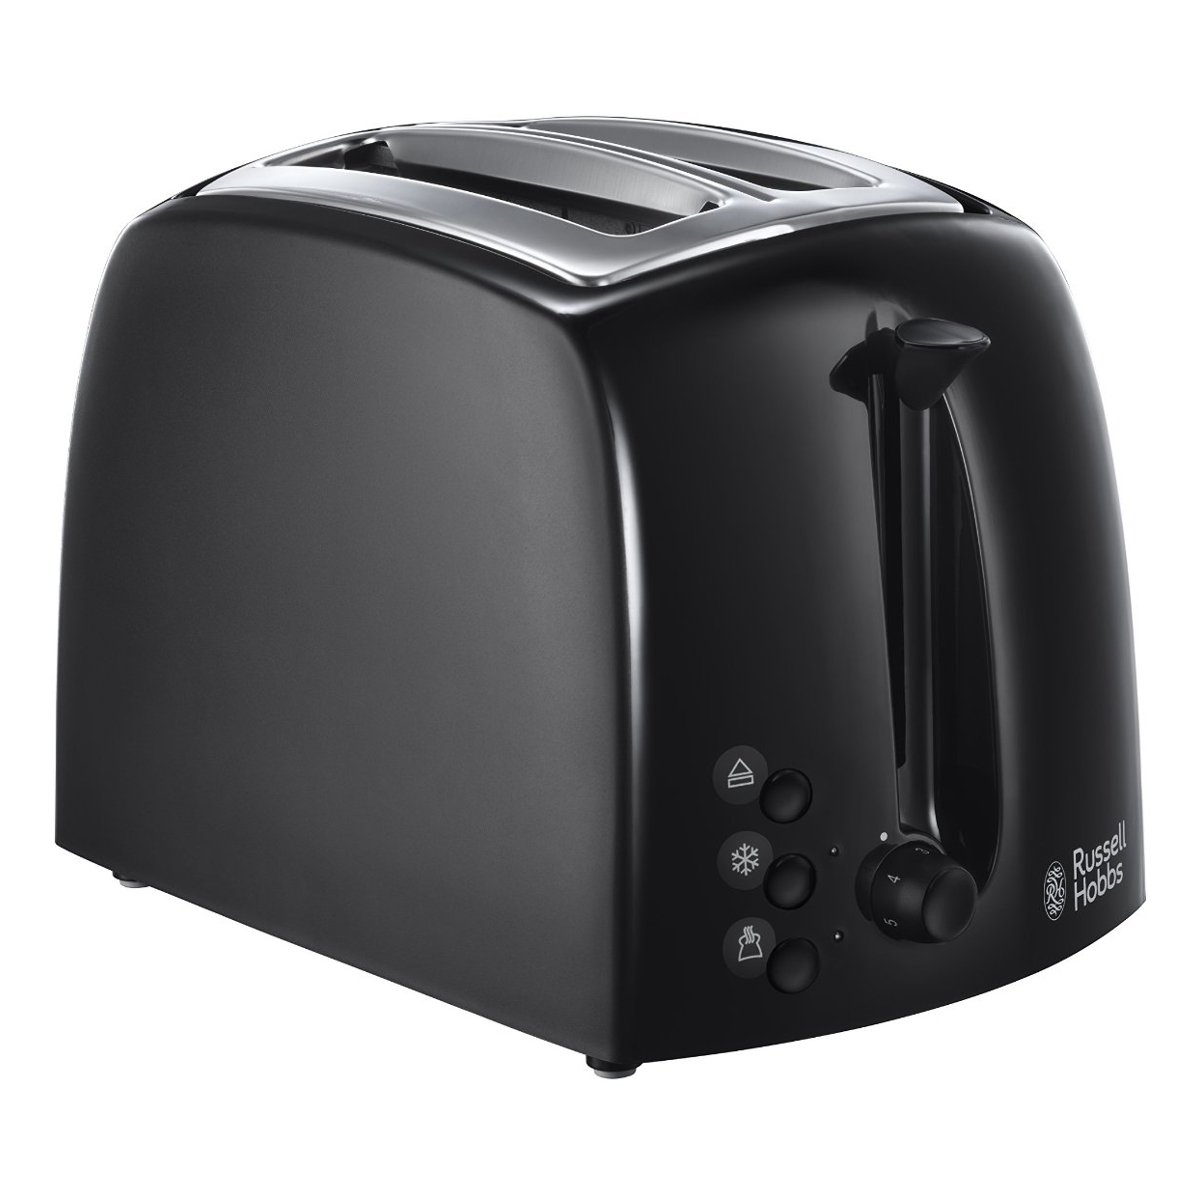 russell hobbs 21641 2 slice toaster with removable crumb tray and wide slots in black hughes. Black Bedroom Furniture Sets. Home Design Ideas